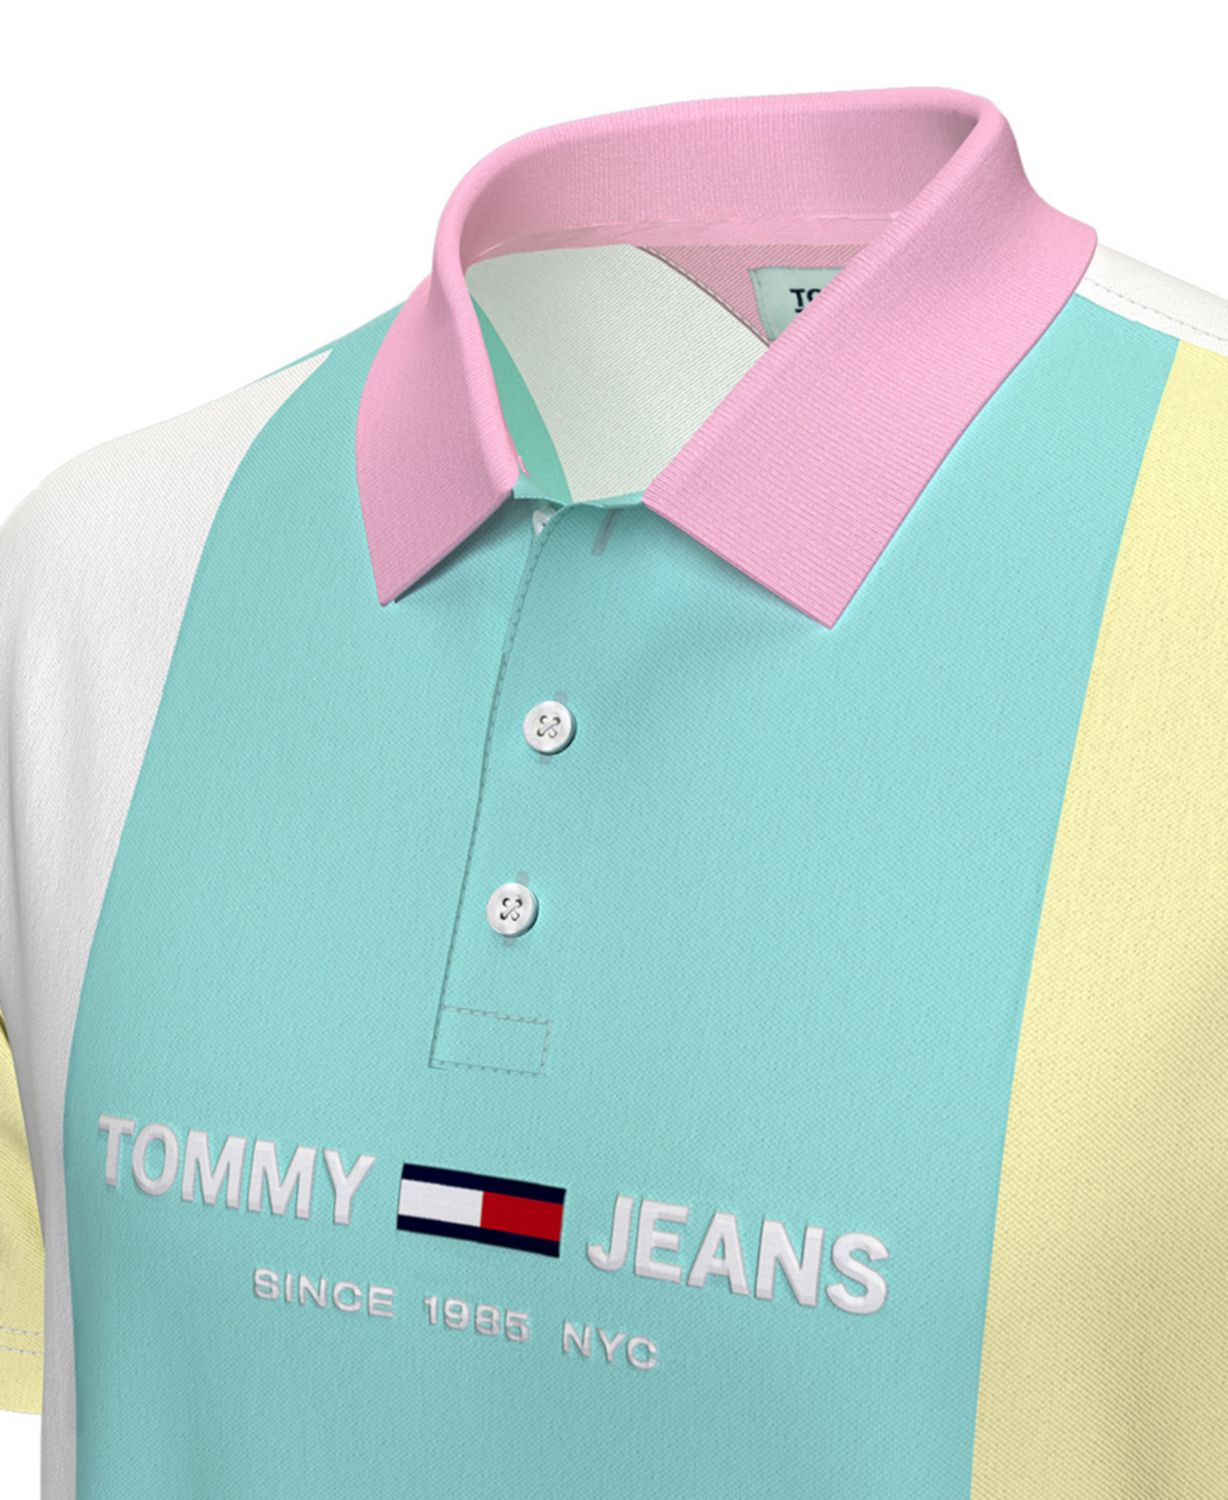 Tommy Hilfiger Tommy Hilfiger Men's Pastel Capsule Colorblocked Polo Shirt & Reviews - Casual Button-Down Shirts - Men - Macy's